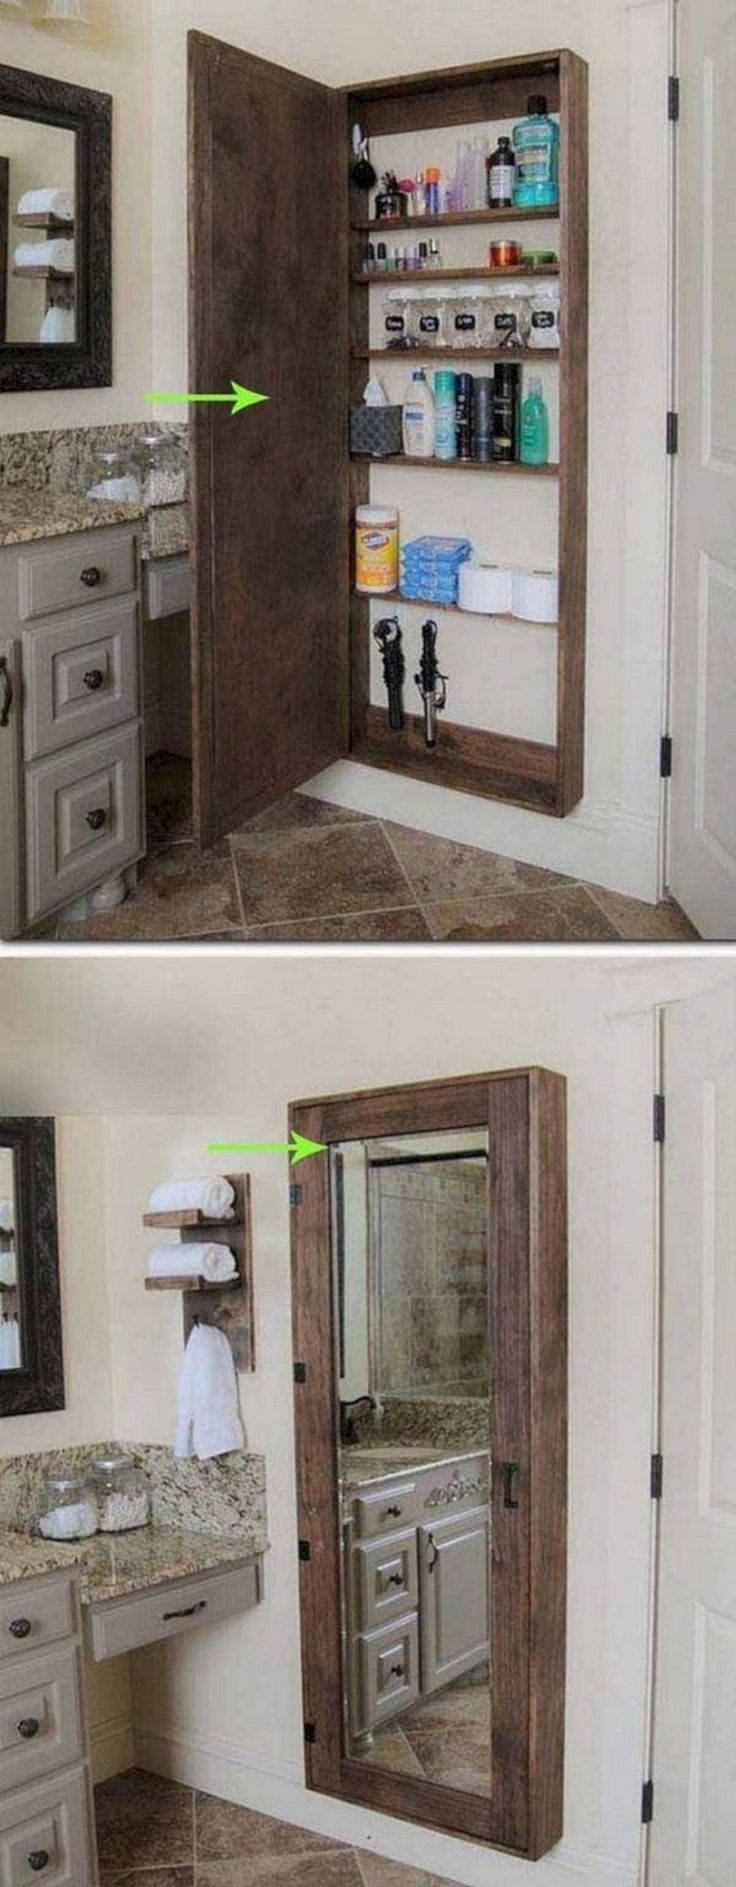 Best 25+ Smart home ideas on Pinterest | Recessed outlets, Cool ...